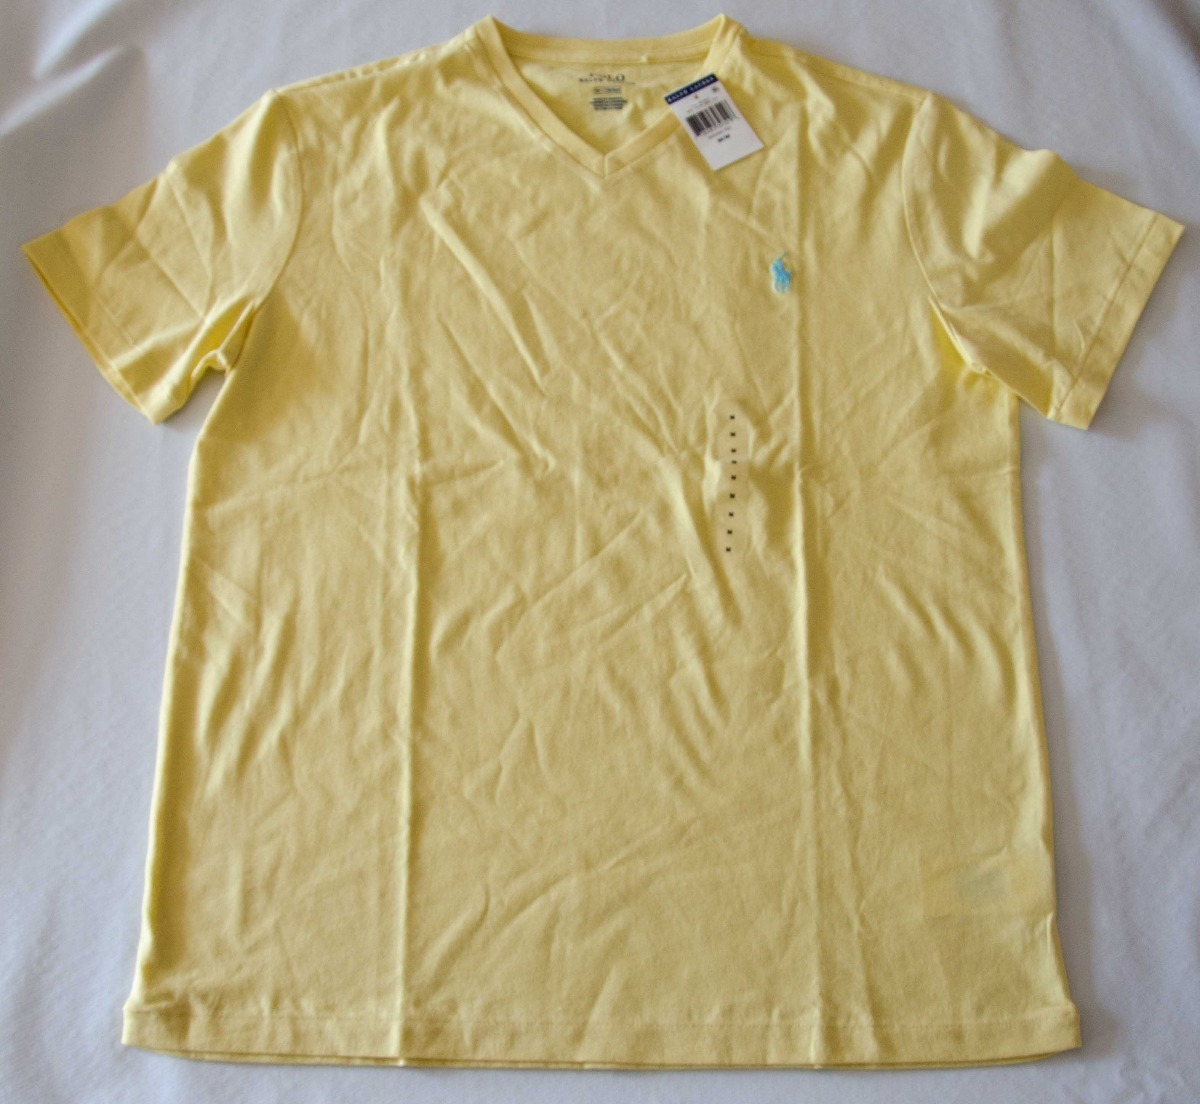 Playera V- Neck M Polo Ralph Lauren Cleotildes Closet -   399.00 en ... b74535db43e4e